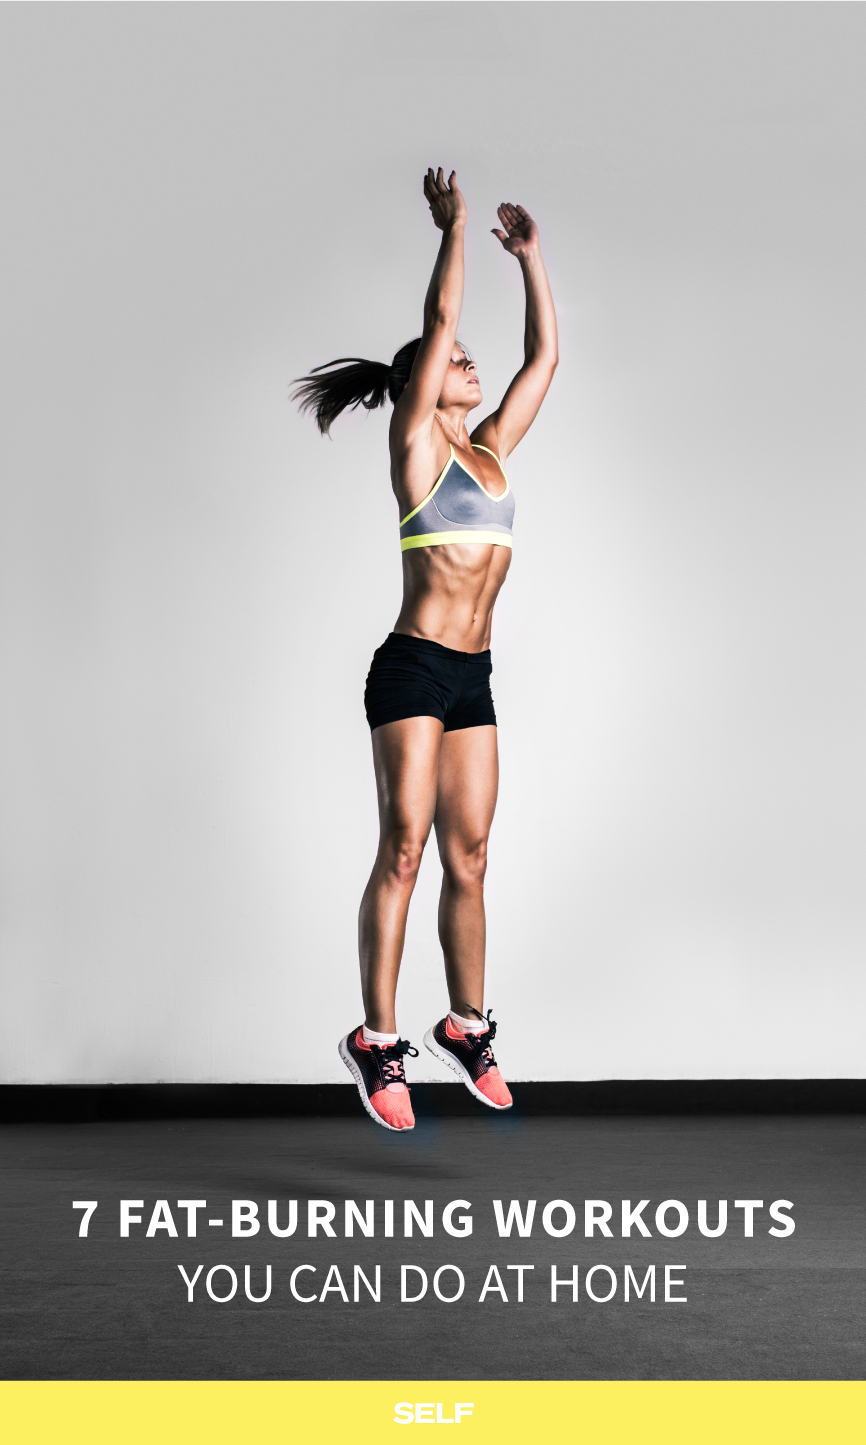 7 At-Home Cardio Workouts That Torch Fat | Cardio workouts, Cardio ...